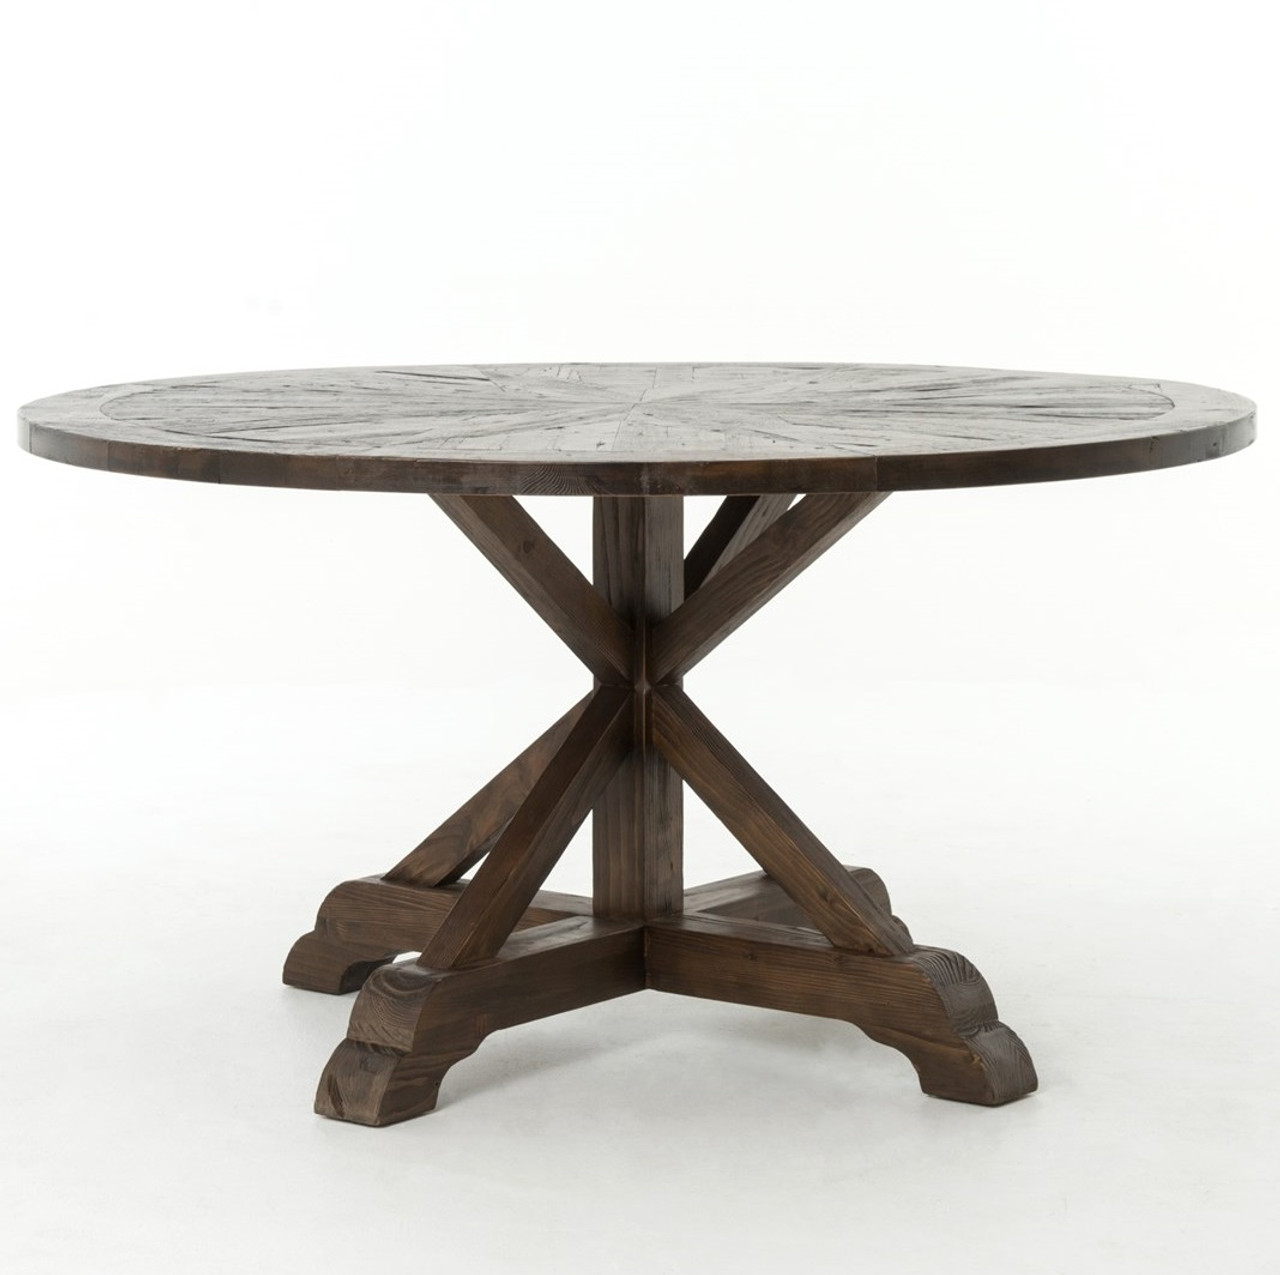 umber reclaimed wood 59 round pedestal dining table zin home. Black Bedroom Furniture Sets. Home Design Ideas